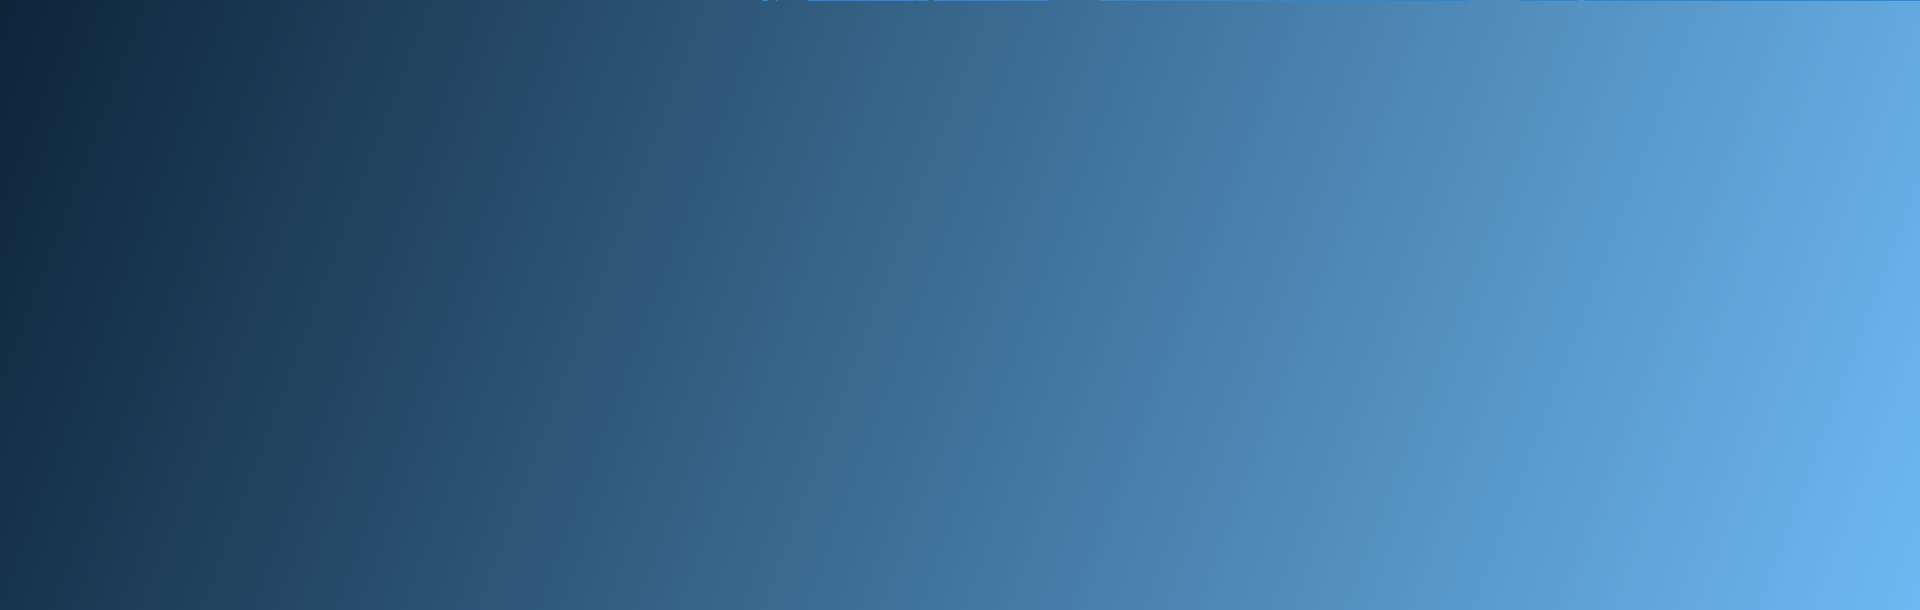 kenburns1